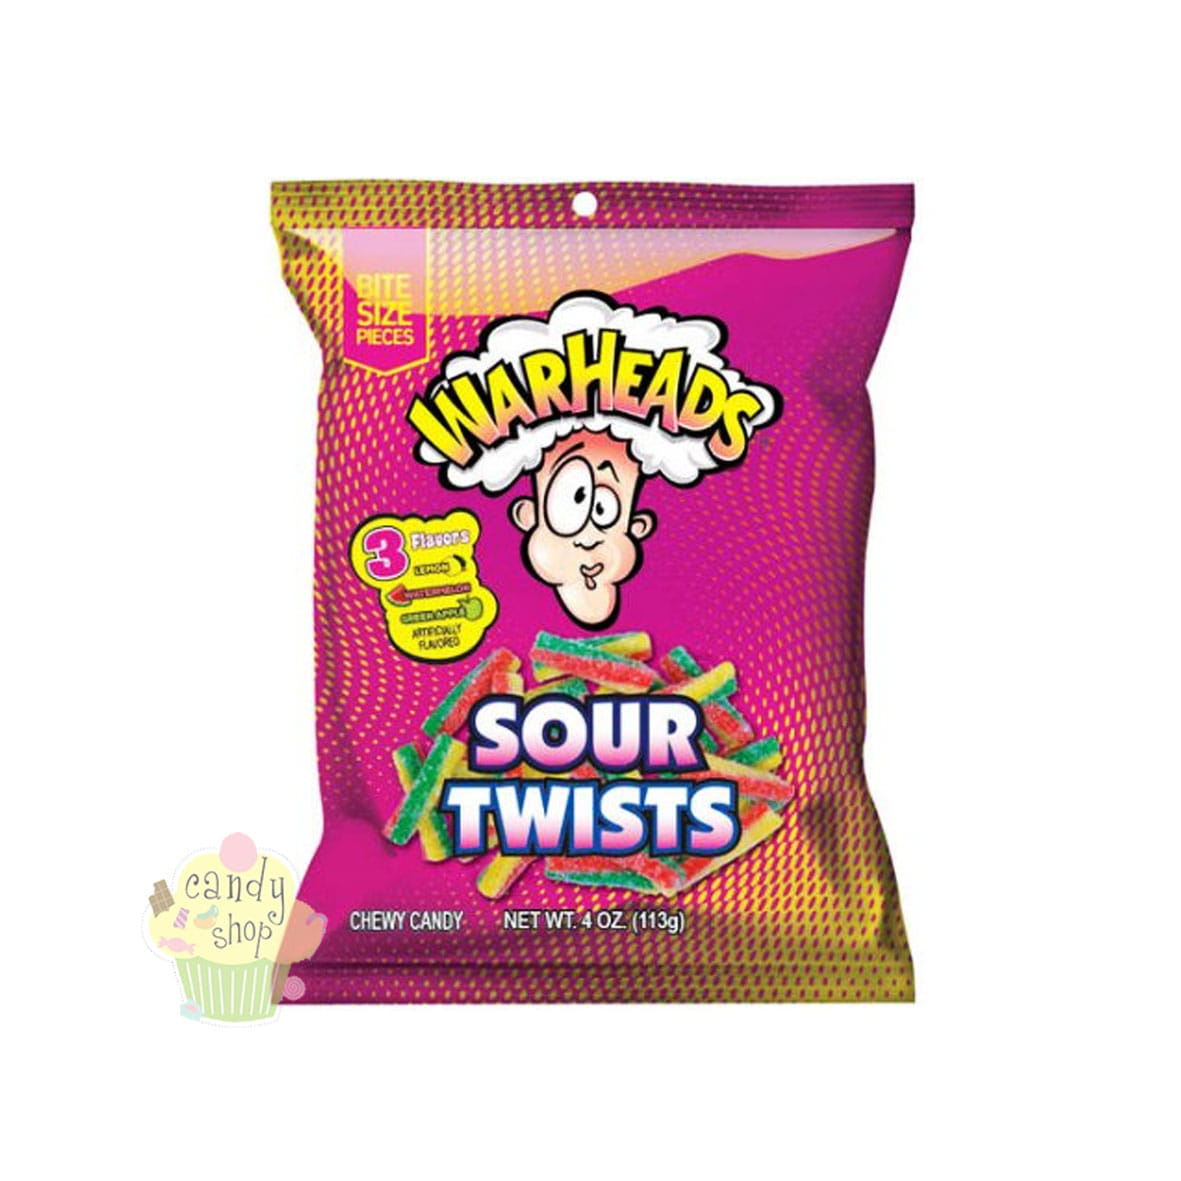 Warhead sour twists.jpg